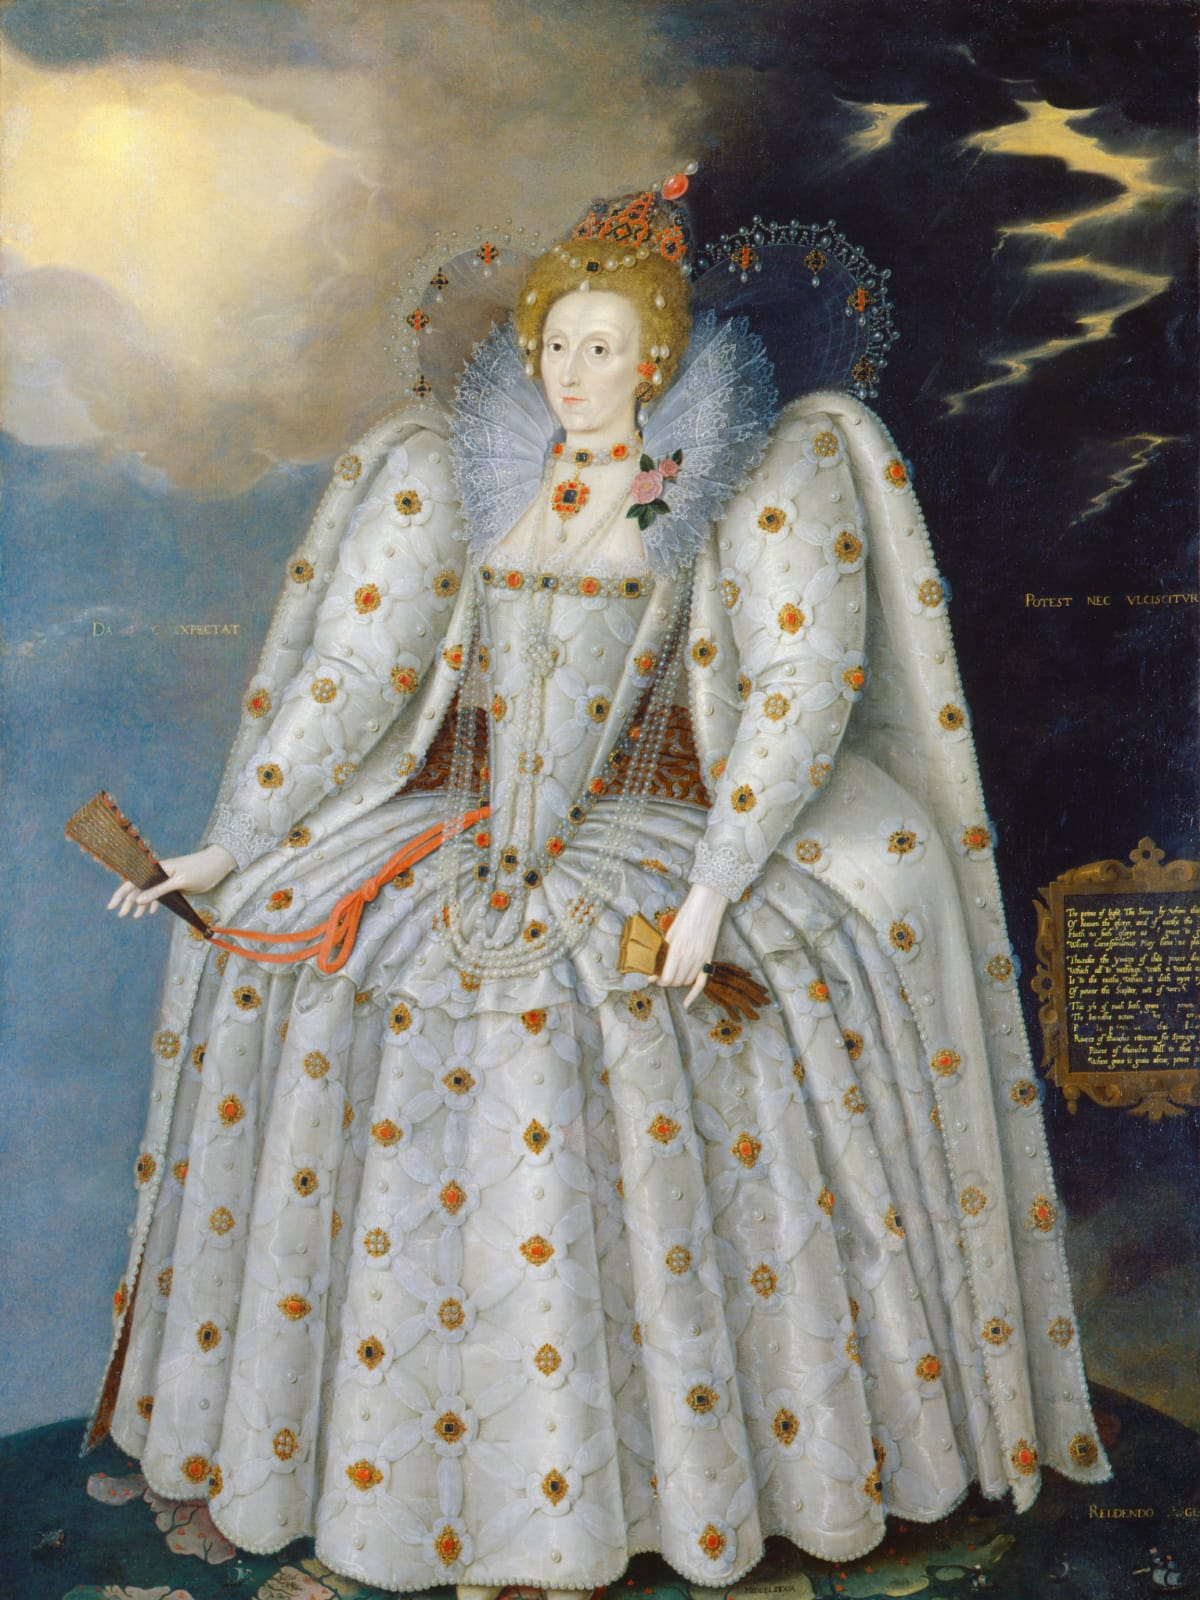 MFAH Tudors to Windsors, Marcus Gheeraerts the Younger, Queen Elizabeth I